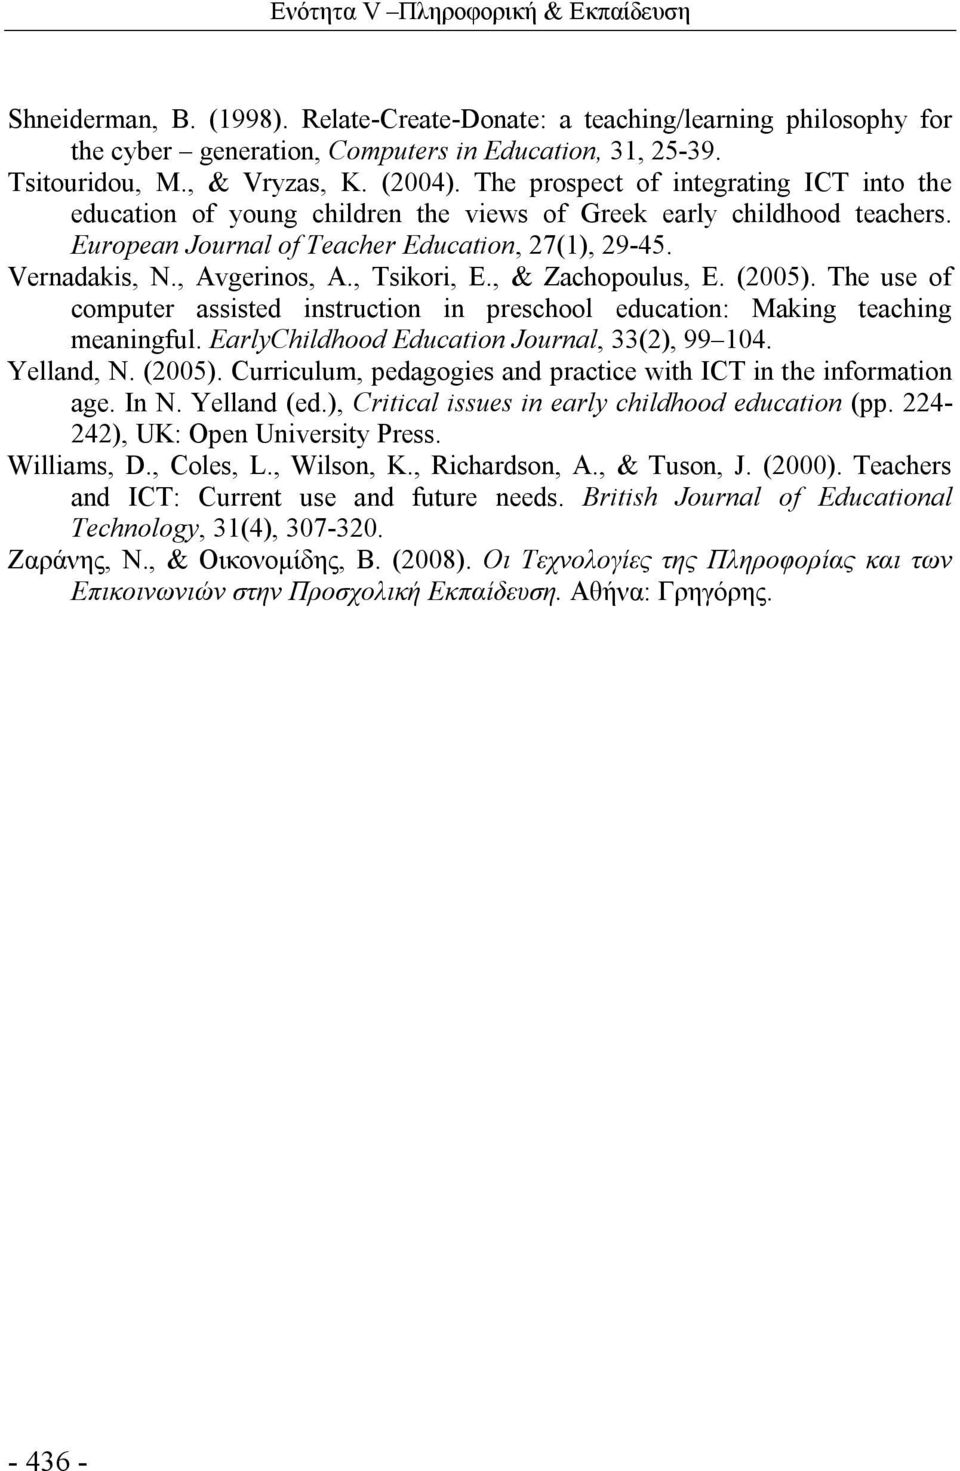 Vernadakis, N., Avgerinos, A., Tsikori, E., & Zachopoulus, E. (2005). The use of computer assisted instruction in preschool education: Making teaching meaningful.